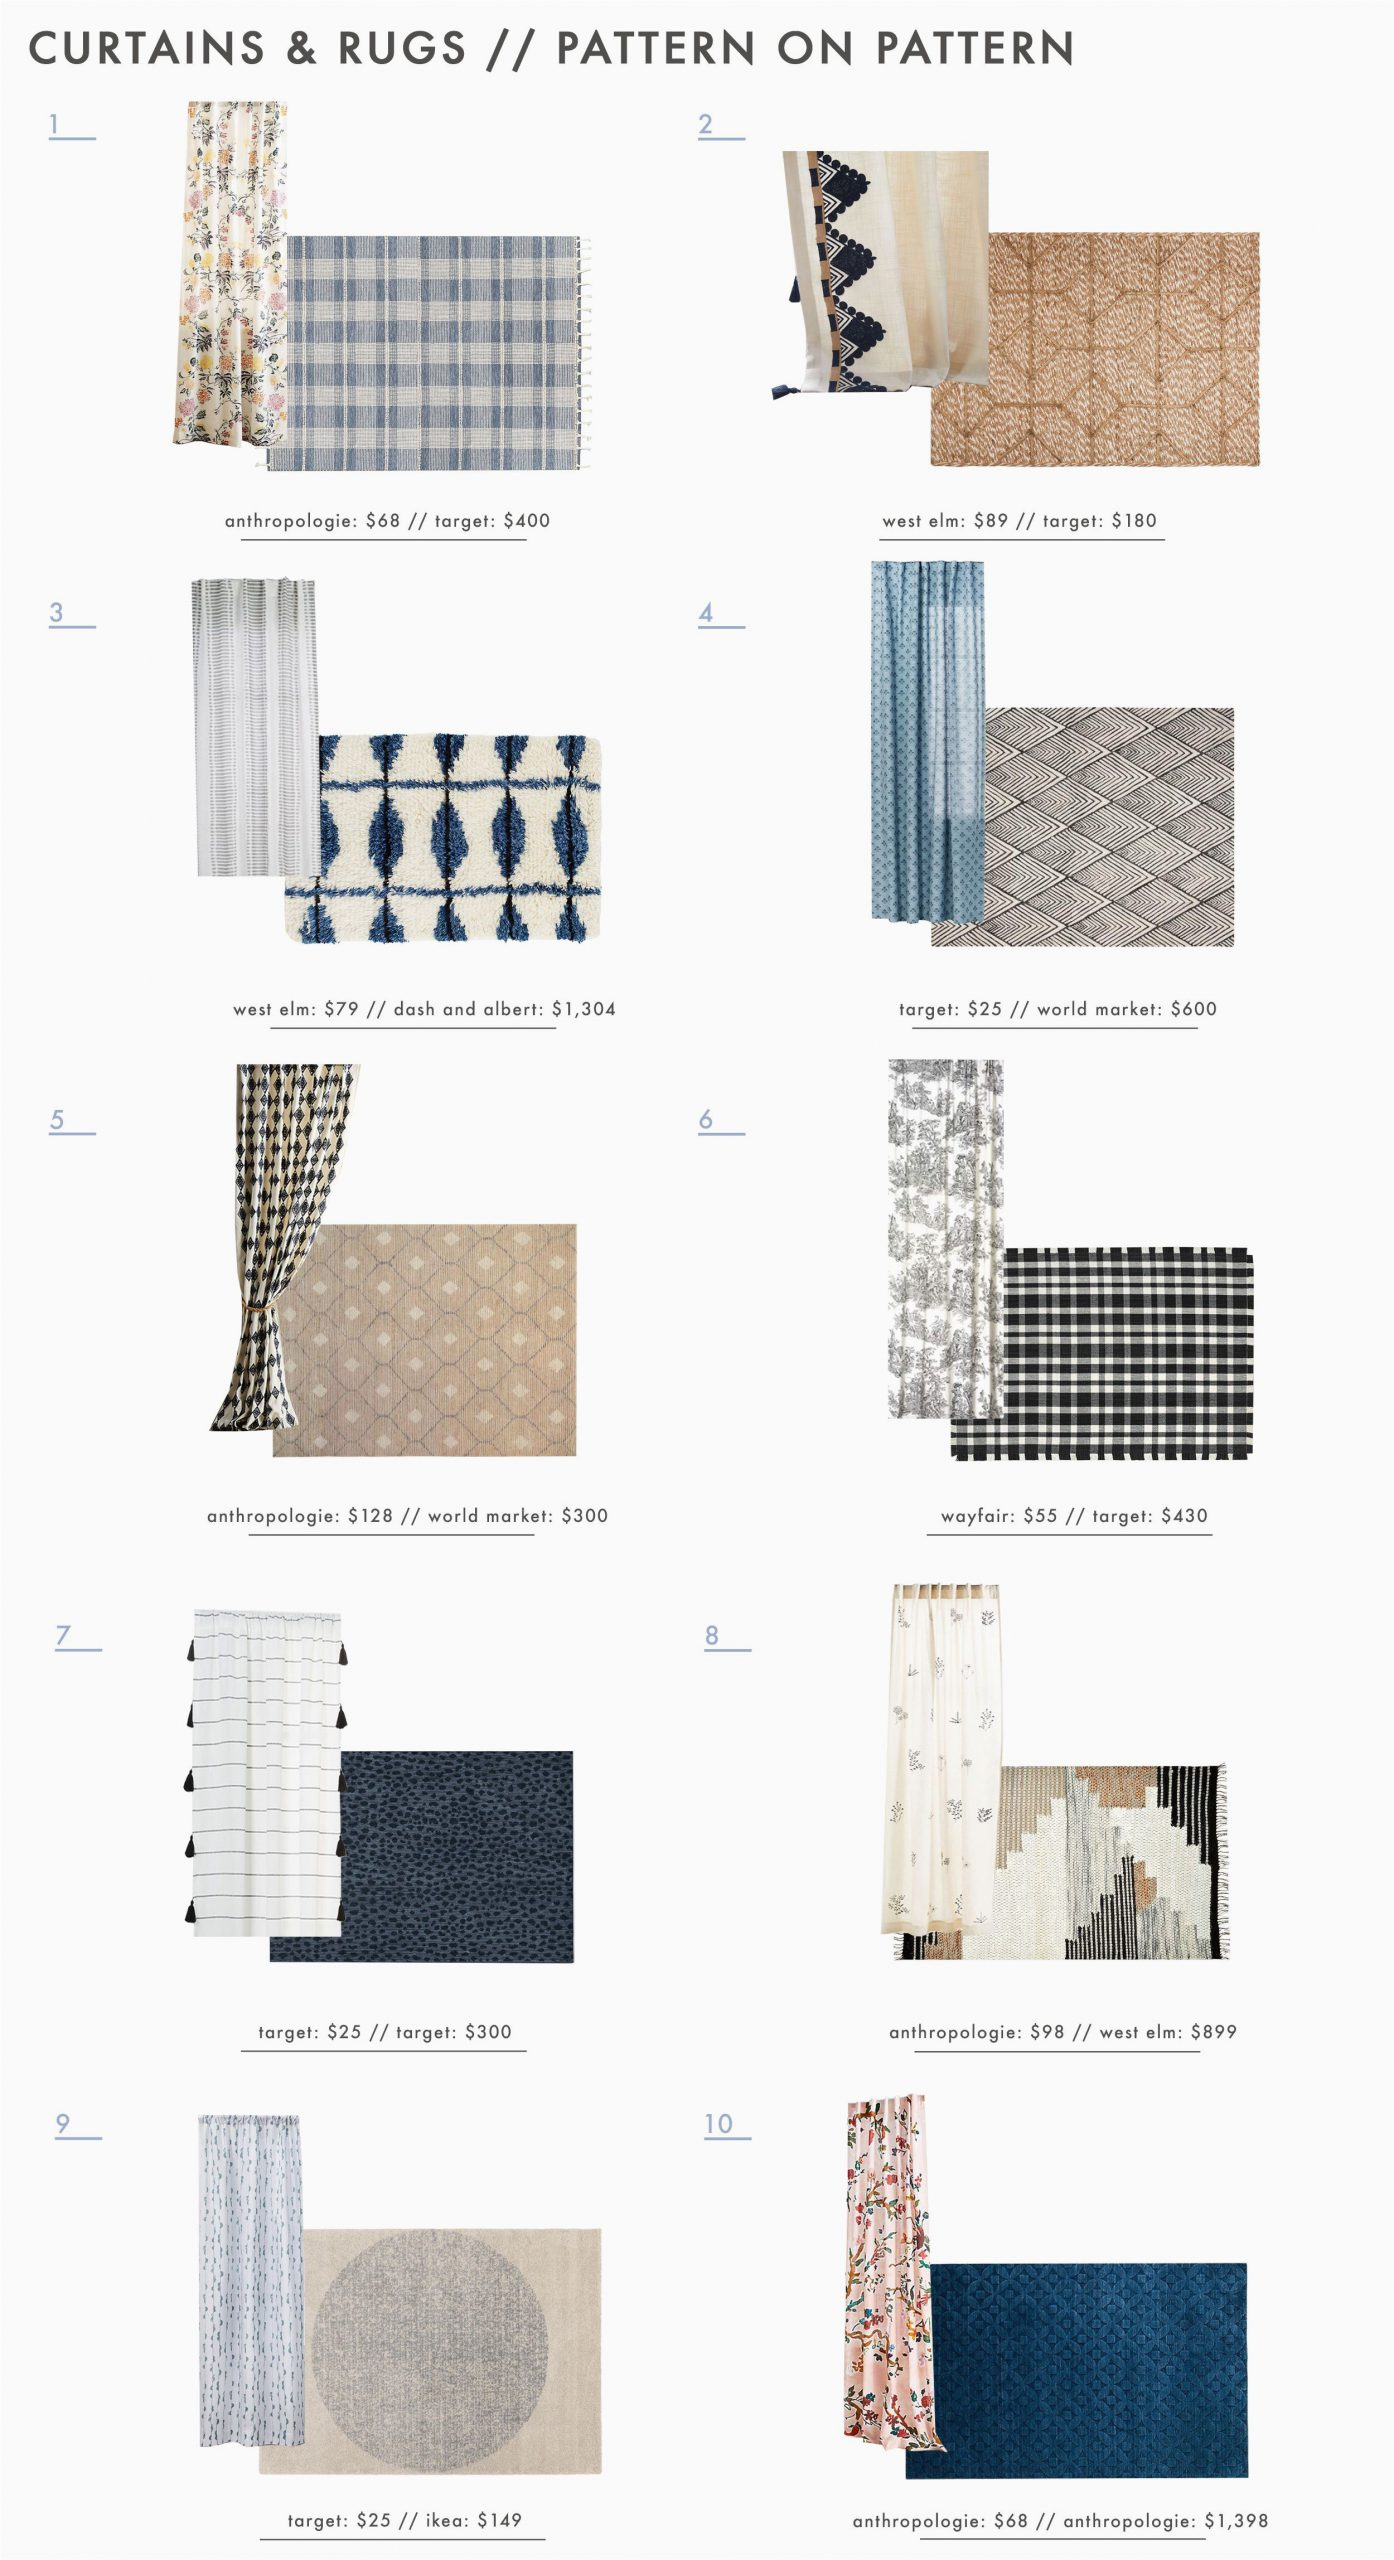 Area Rugs and Matching Pillows Power Couples How to Expertly Pair Curtains & Rugs 30